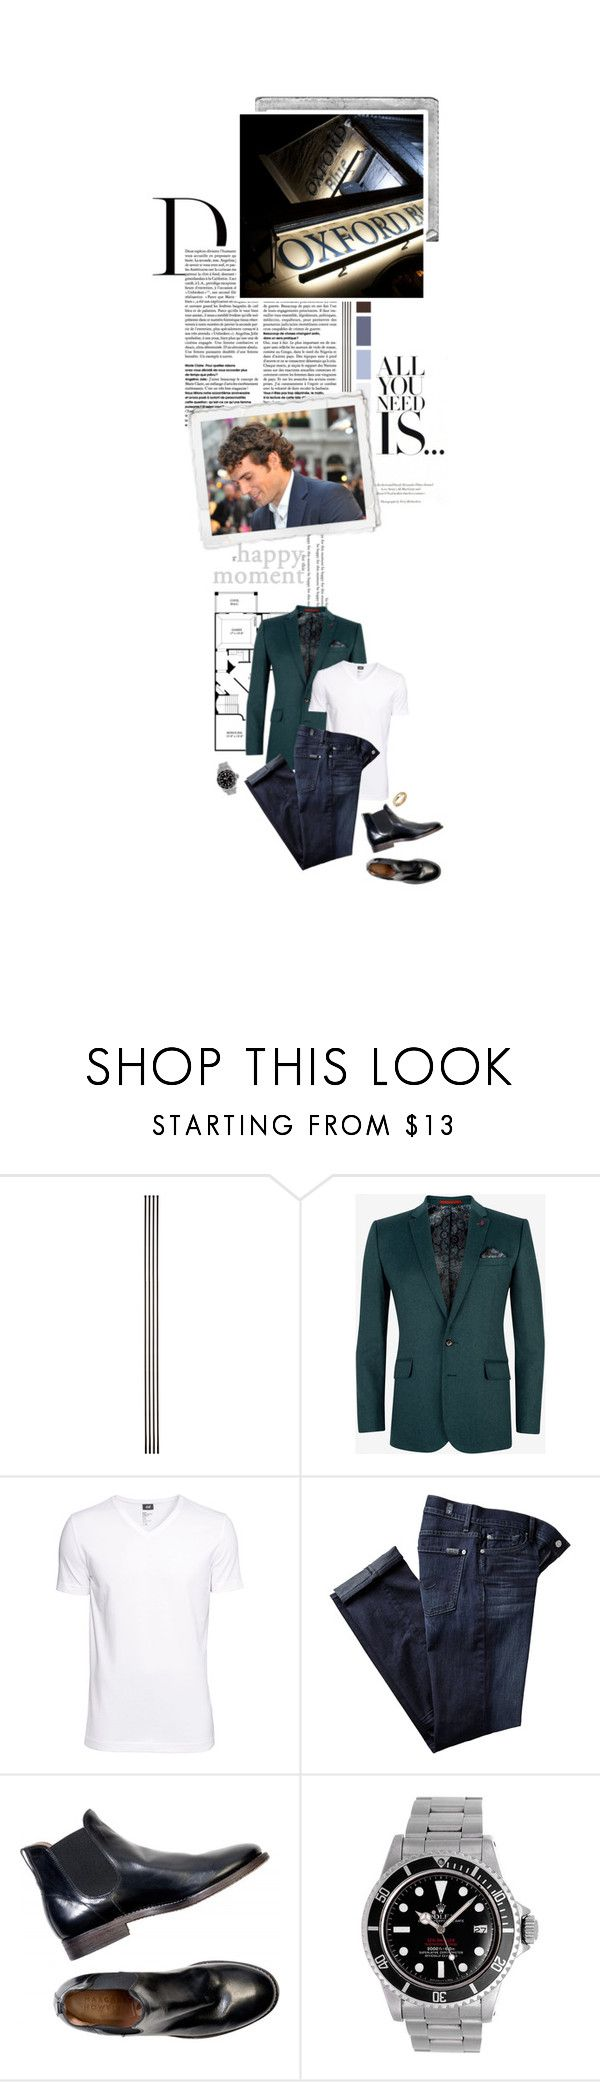 """""""(A) Takes Lydia out to dinner at Old Windsor restaurant The Oxford Blue"""" by immortal-longings ❤ liked on Polyvore featuring Improvements, Polaroid, Ted Baker, H&M, 7 For All Mankind, Rolex, men's fashion and menswear"""